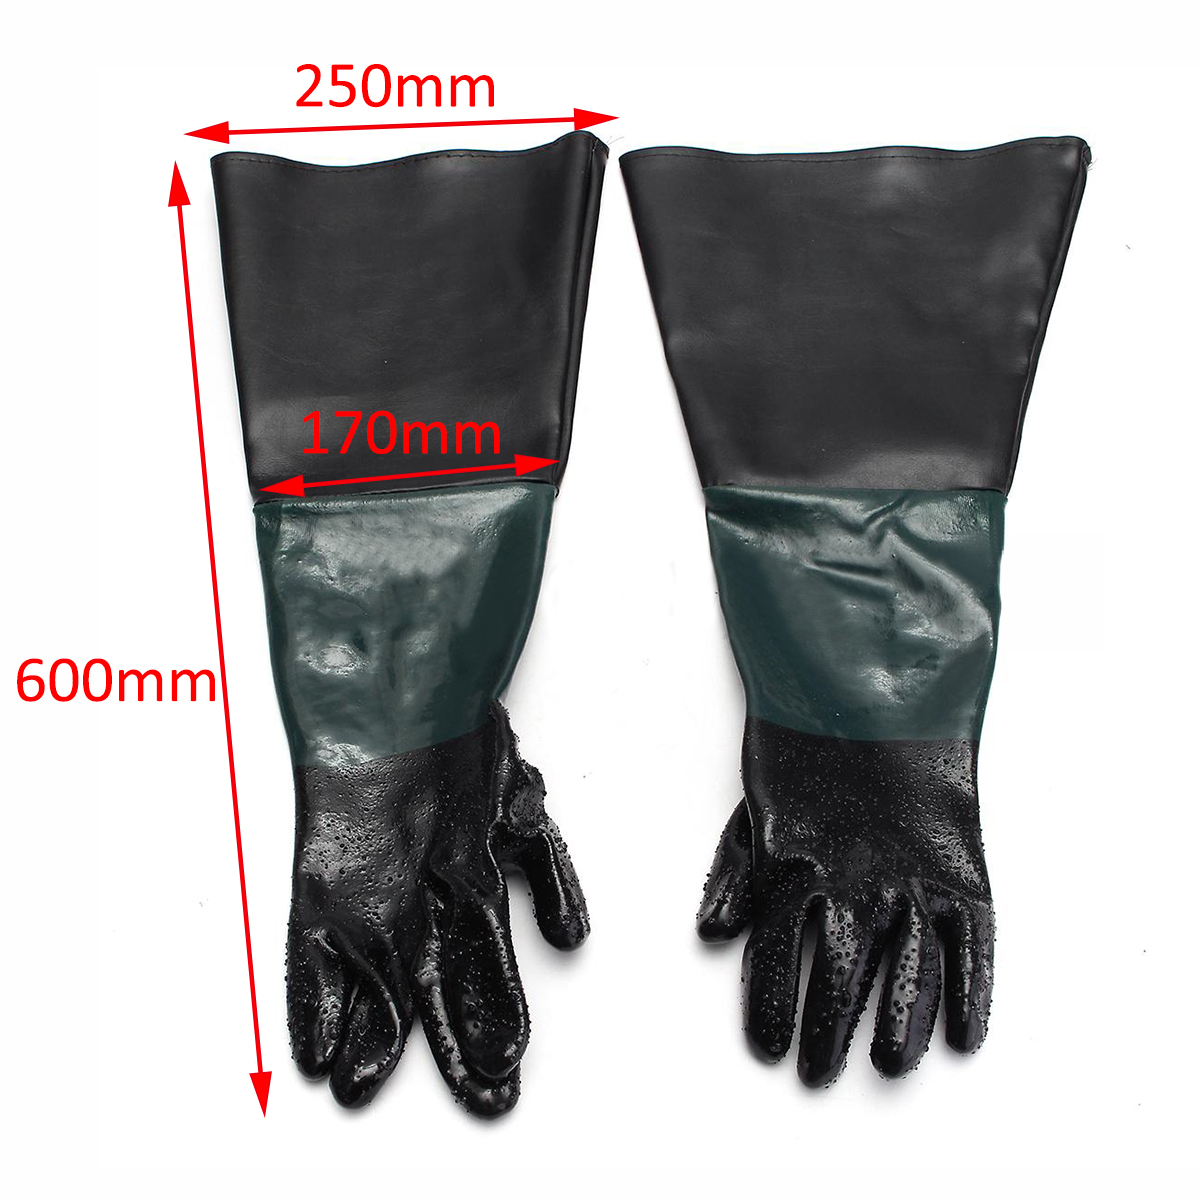 1 Pair Soft Heavy Duty Protective Sandblasting Machine Gloves 60cm For Sandblaster Sand Blast Cabinet Mayitr pvc sandblaster gloves 60cm